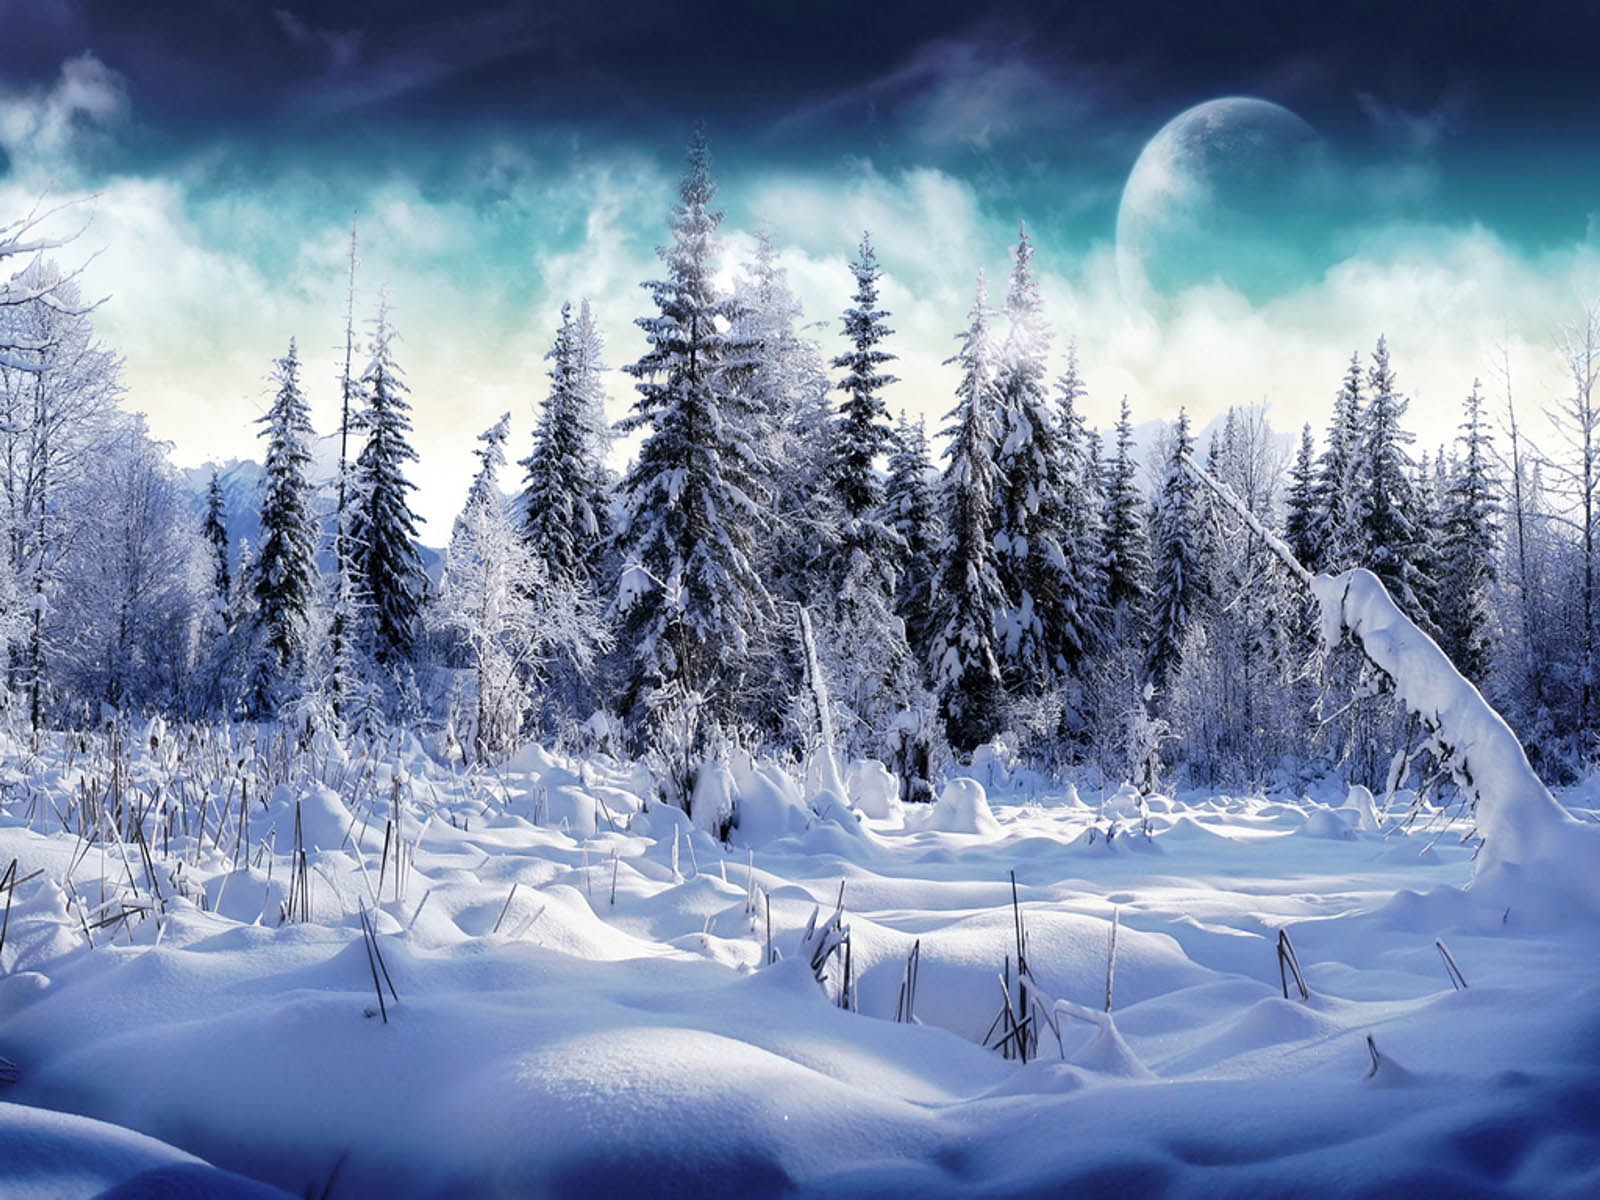 Snow Wallpapers Desktop Backgrounds 1600x1200